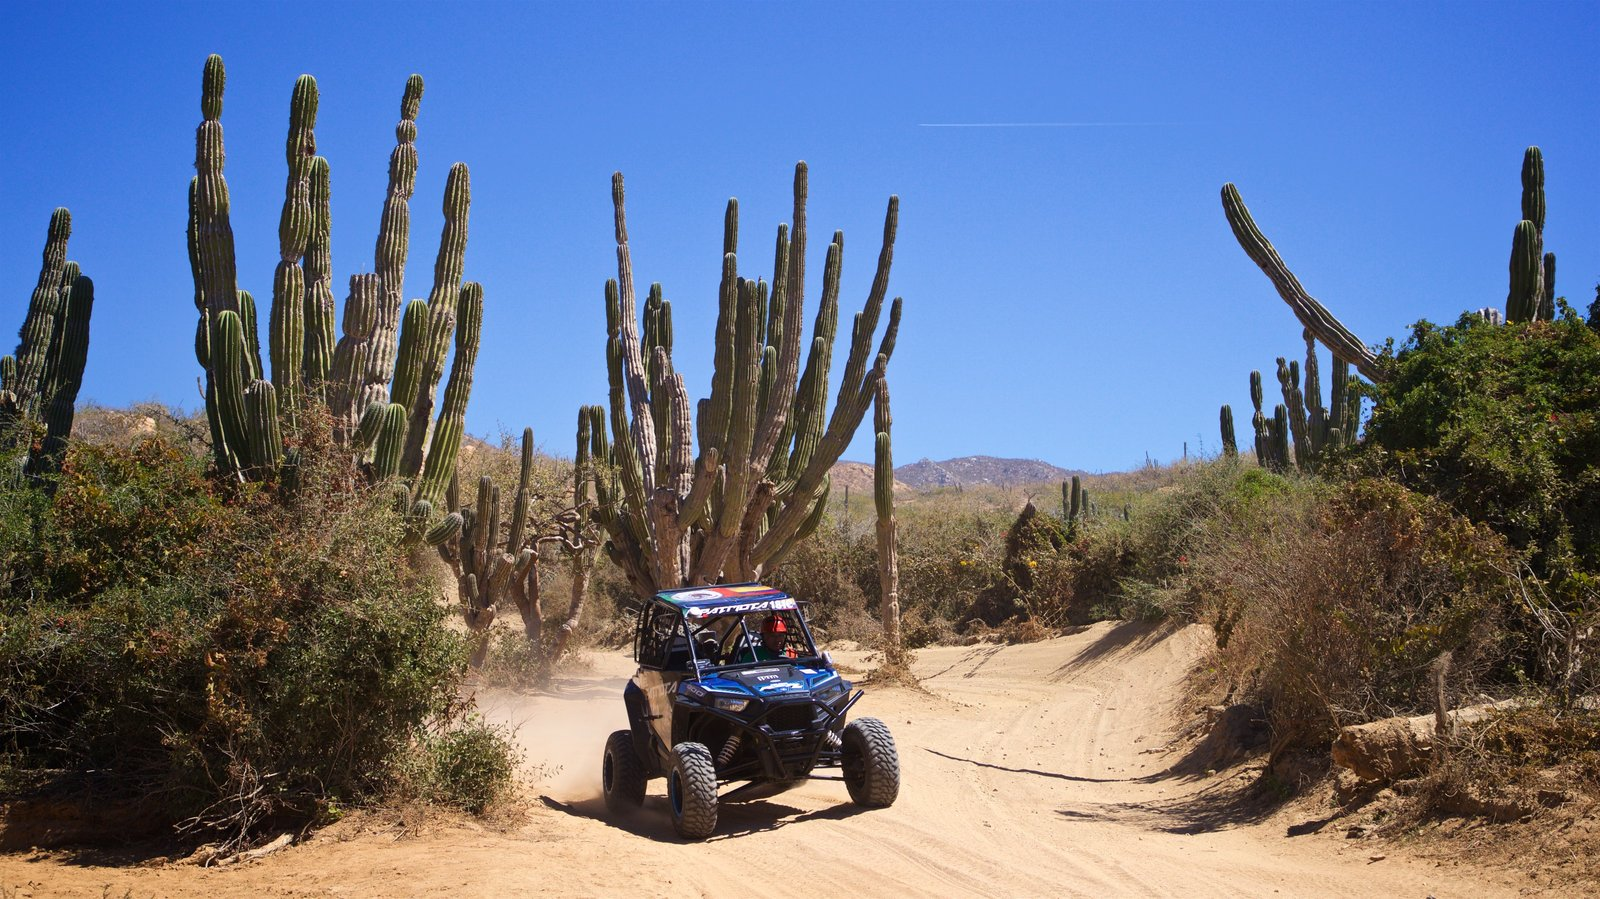 Migrino which includes 4 wheel driving and desert views